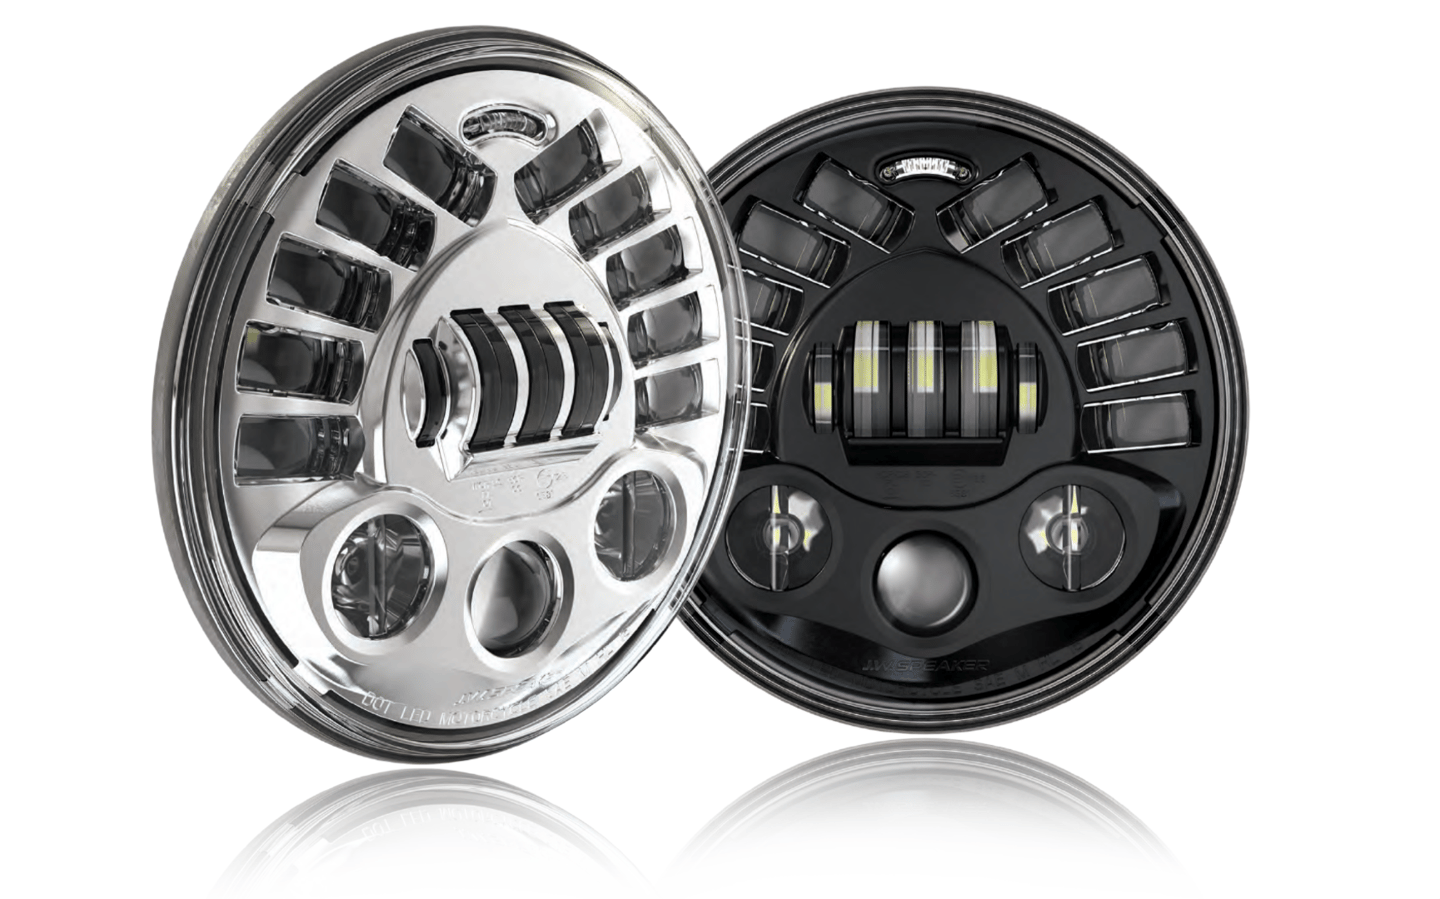 J.W. Speaker Model 8790 Adaptive Low Beam LED Headlight: designed to look around corners and eliminate the typical rider's blind spot